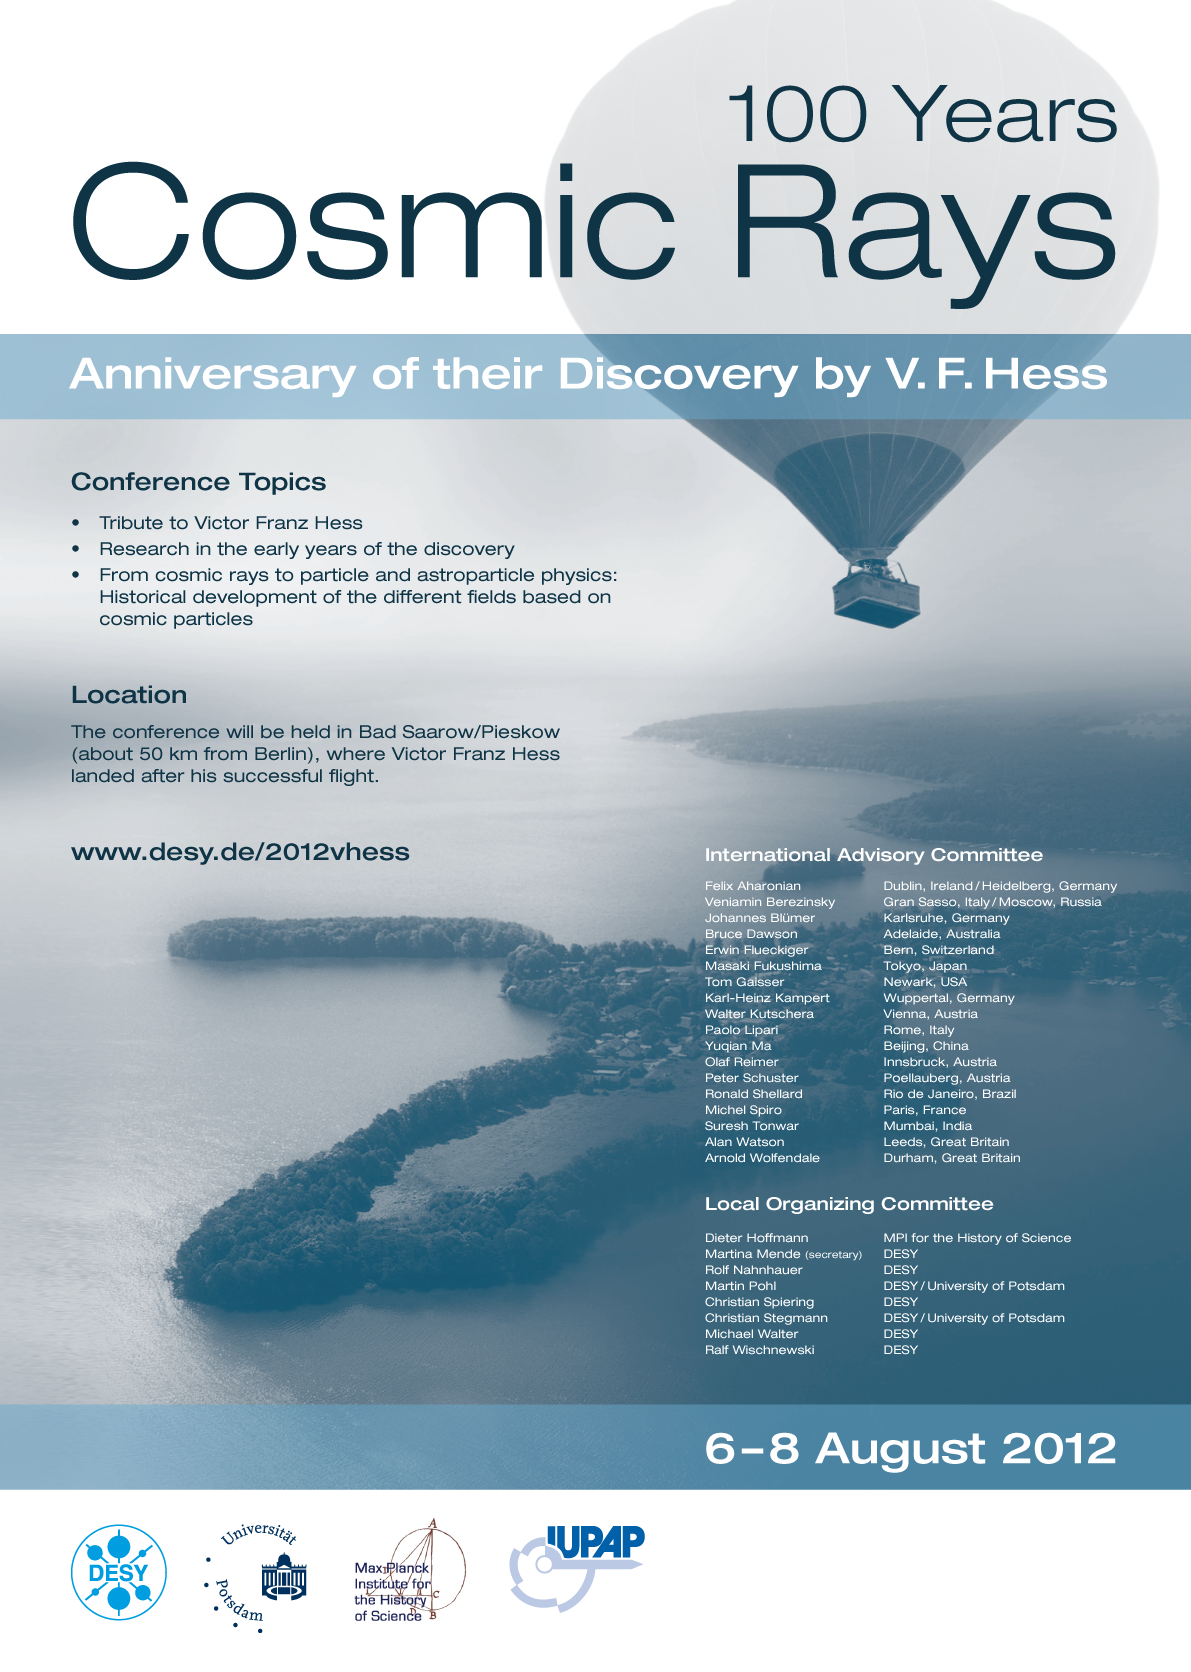 100 Years of Cosmic Rays Discovery